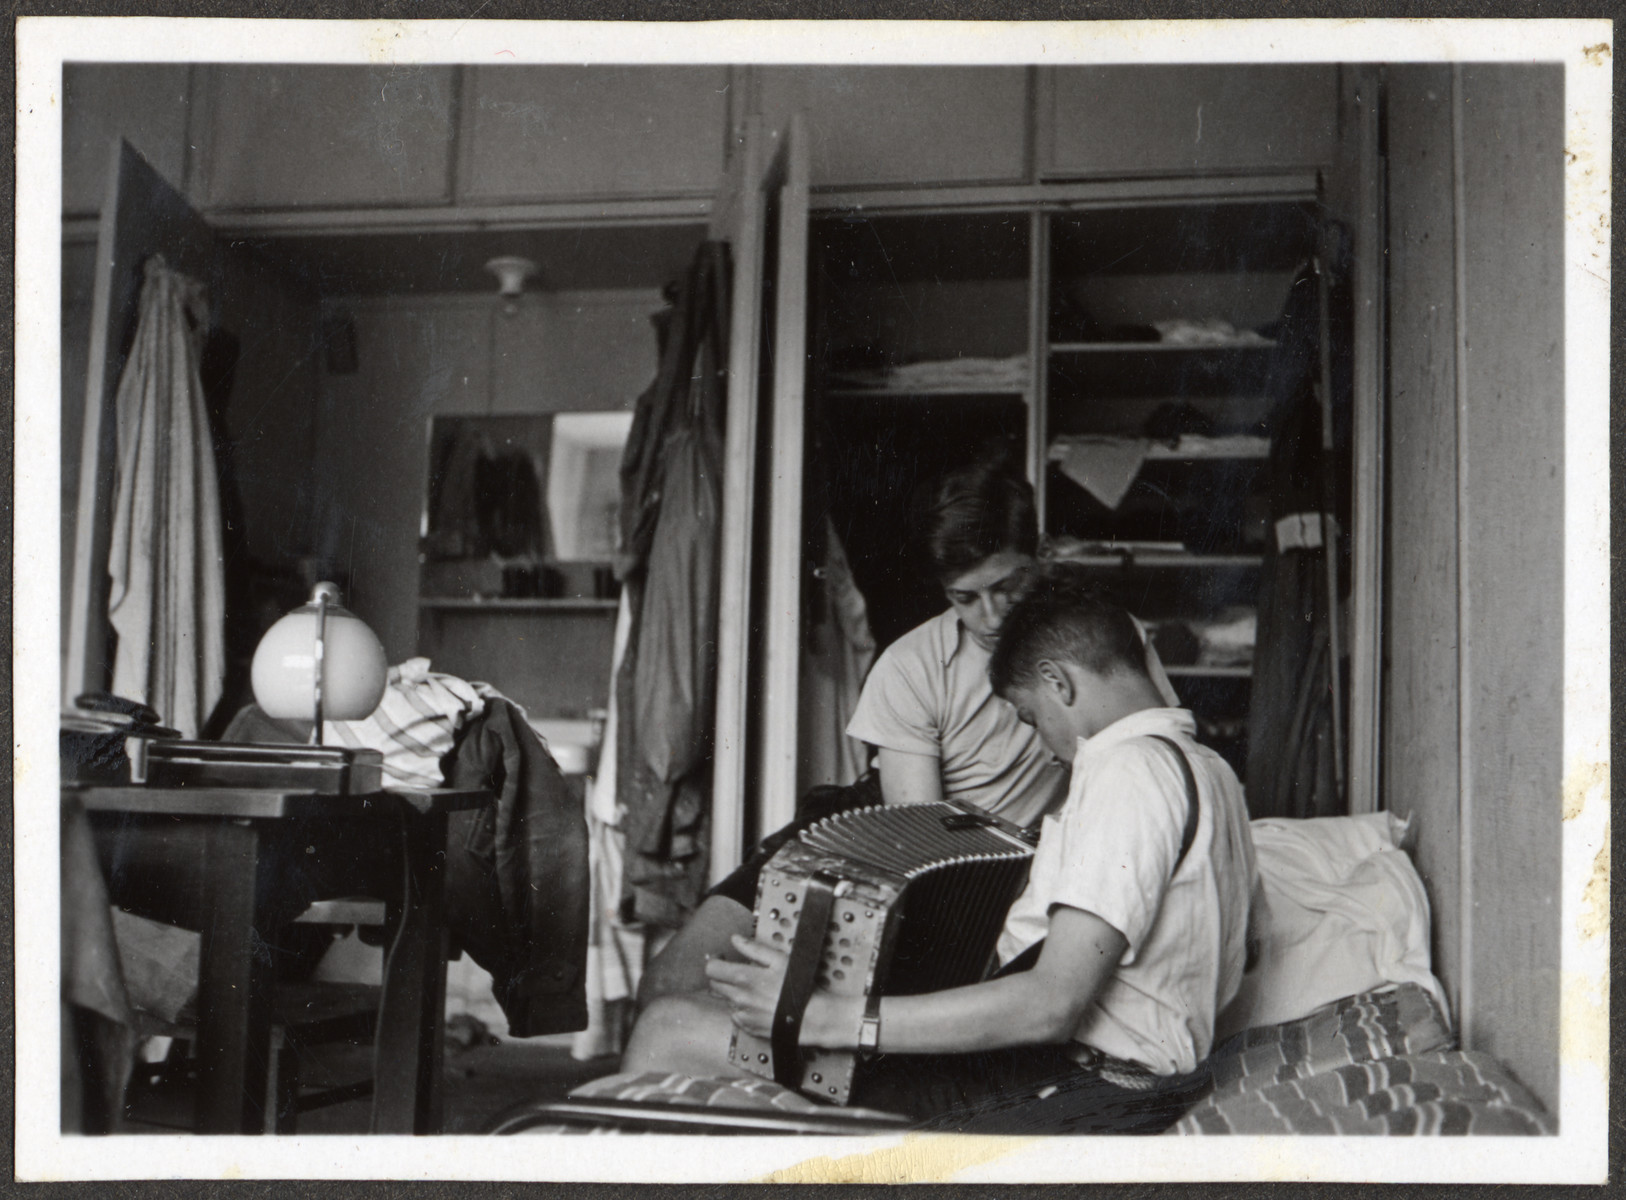 Two teenagers, probably German Jewish refugees, play accordion and relax in their dorm room in a Quaker boarding school in Eerde.